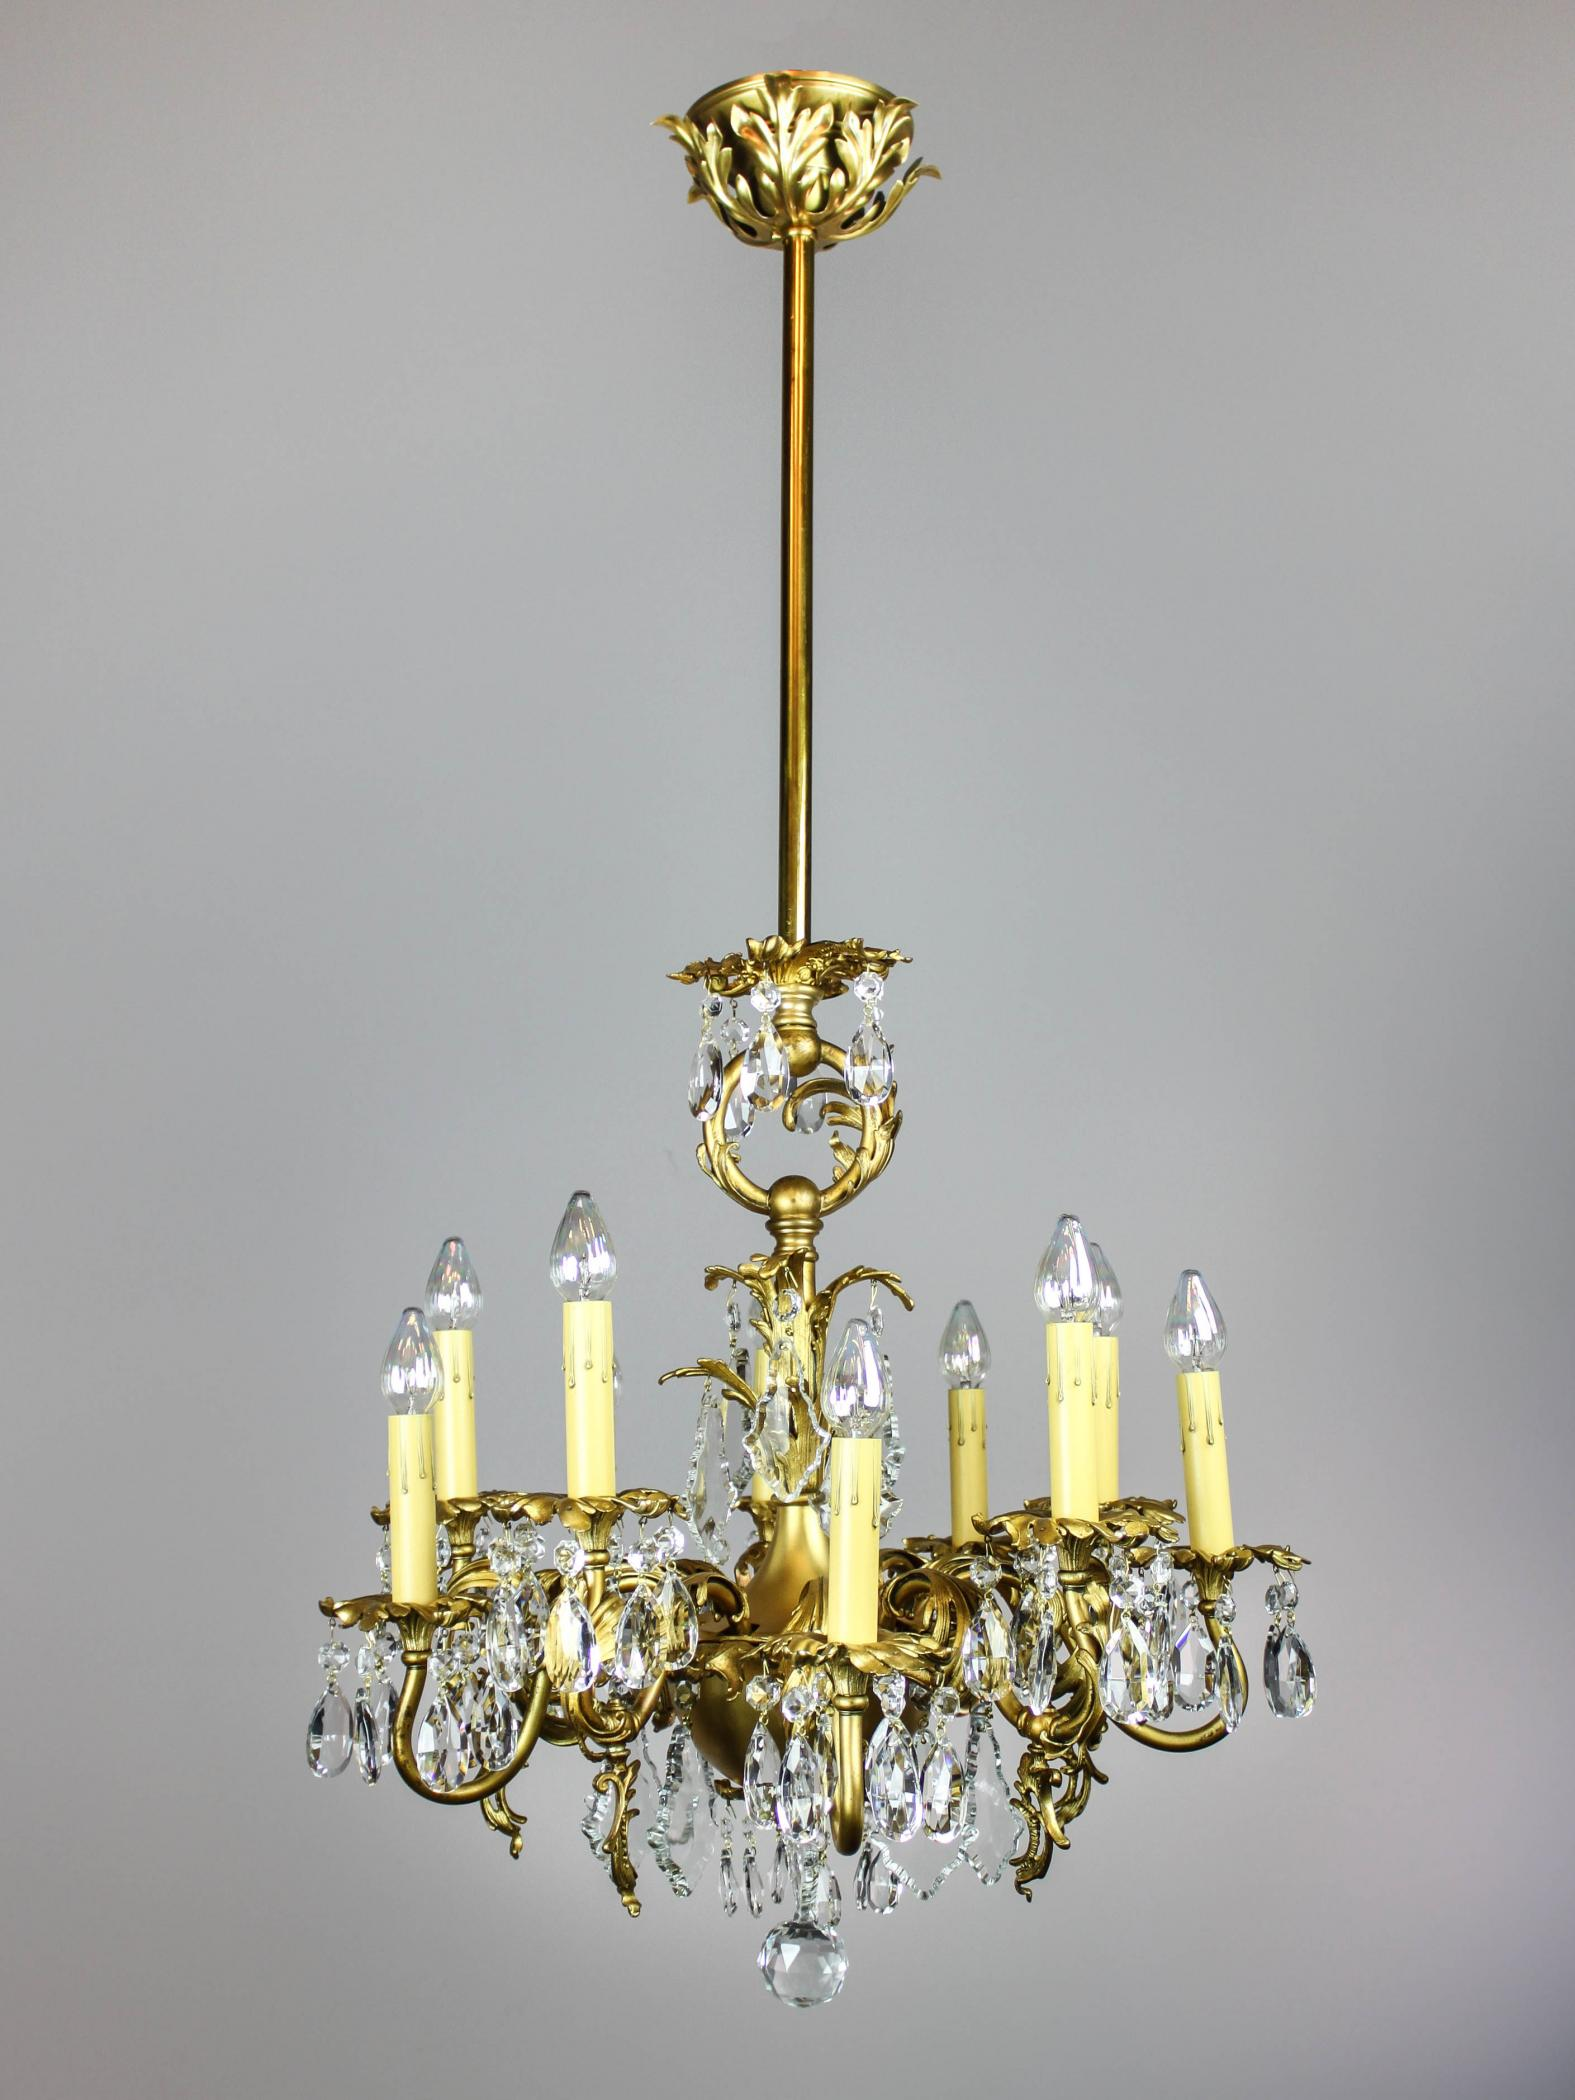 Converted gas light chandelier chandelier designs converted gas light chandelier designs arubaitofo Gallery